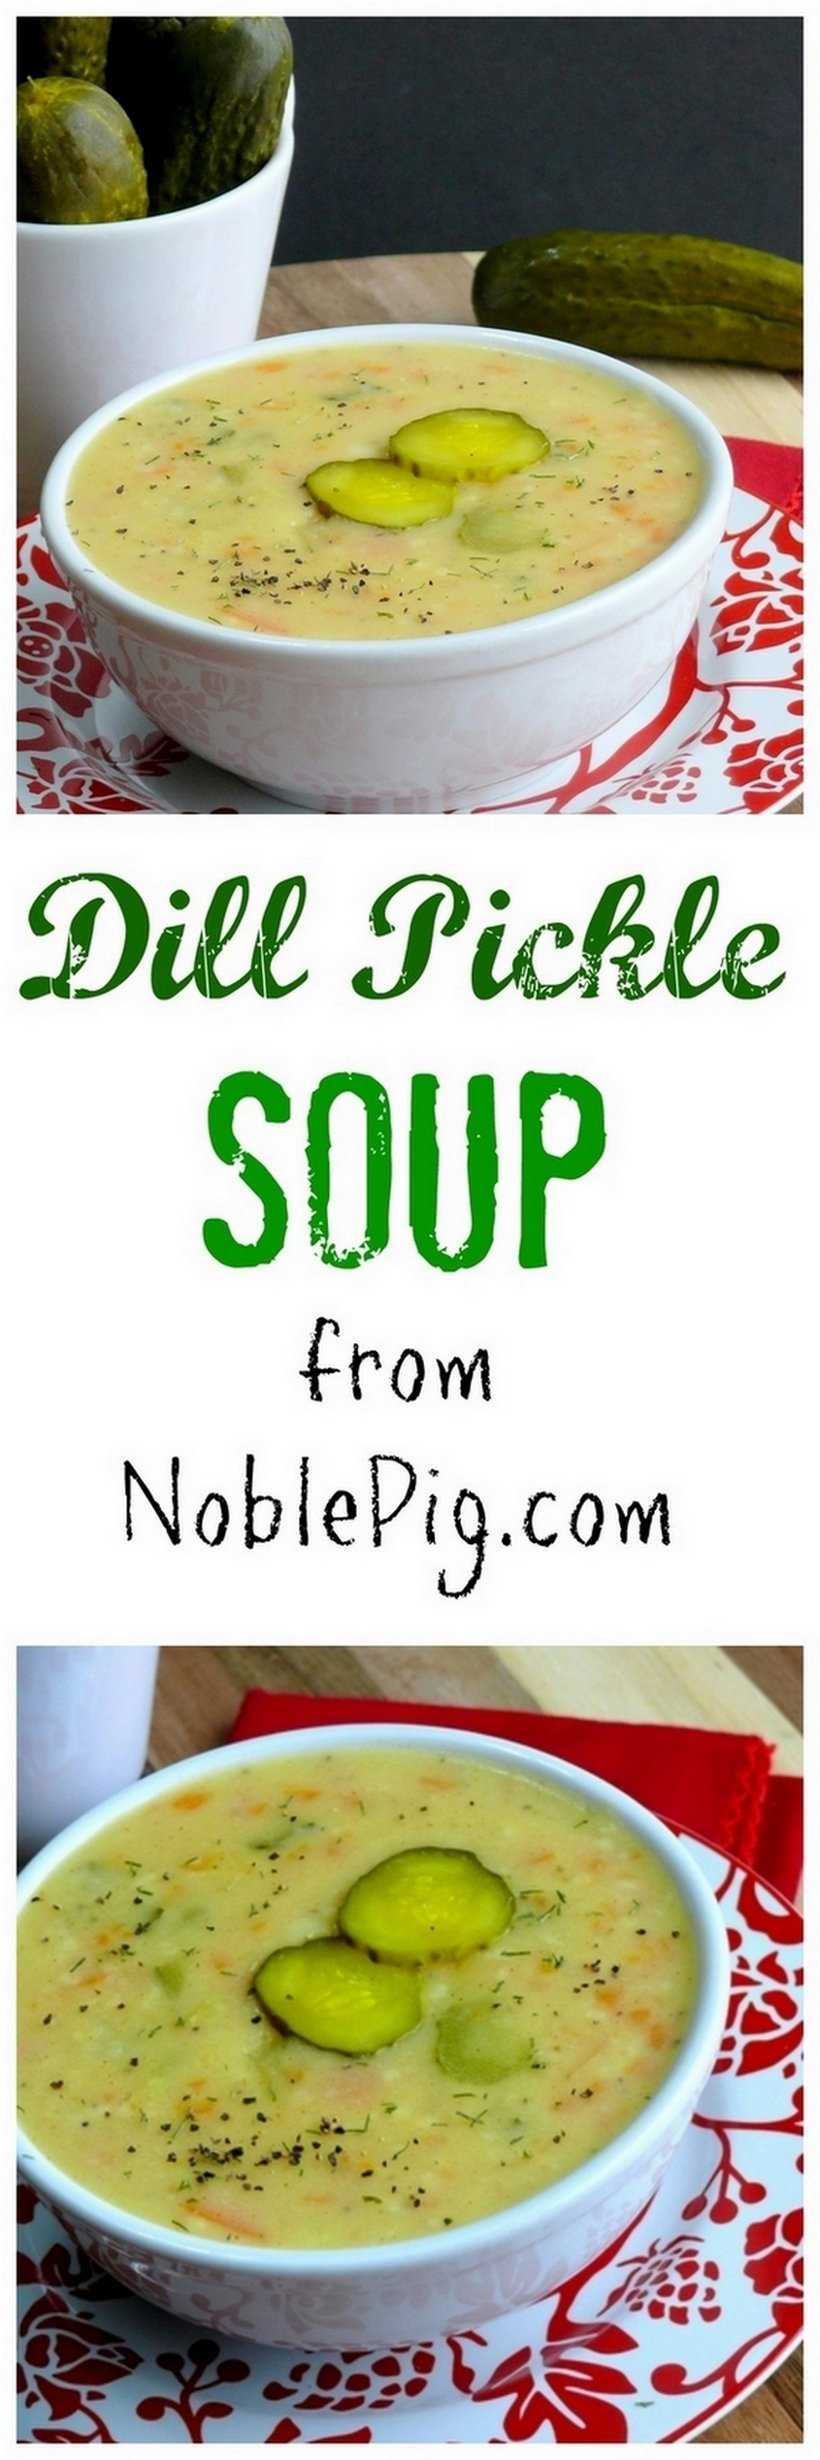 Two separate images of dill pickle soup in a bowl with the words dill pickle soup from Noblepig.com in text.